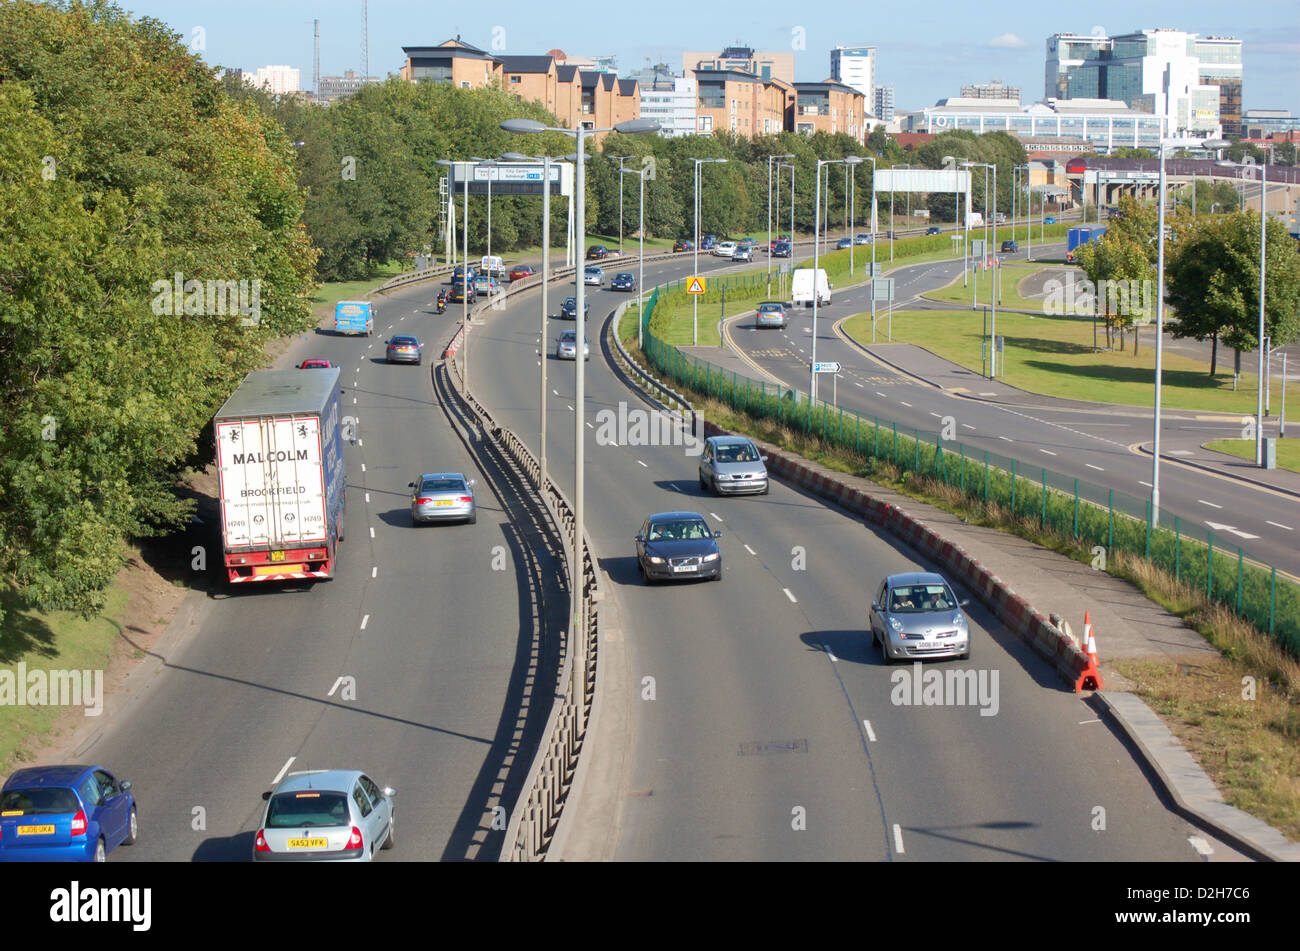 Traffic on the Clydeside Expressway in Glasgow, Scotland - Stock Image